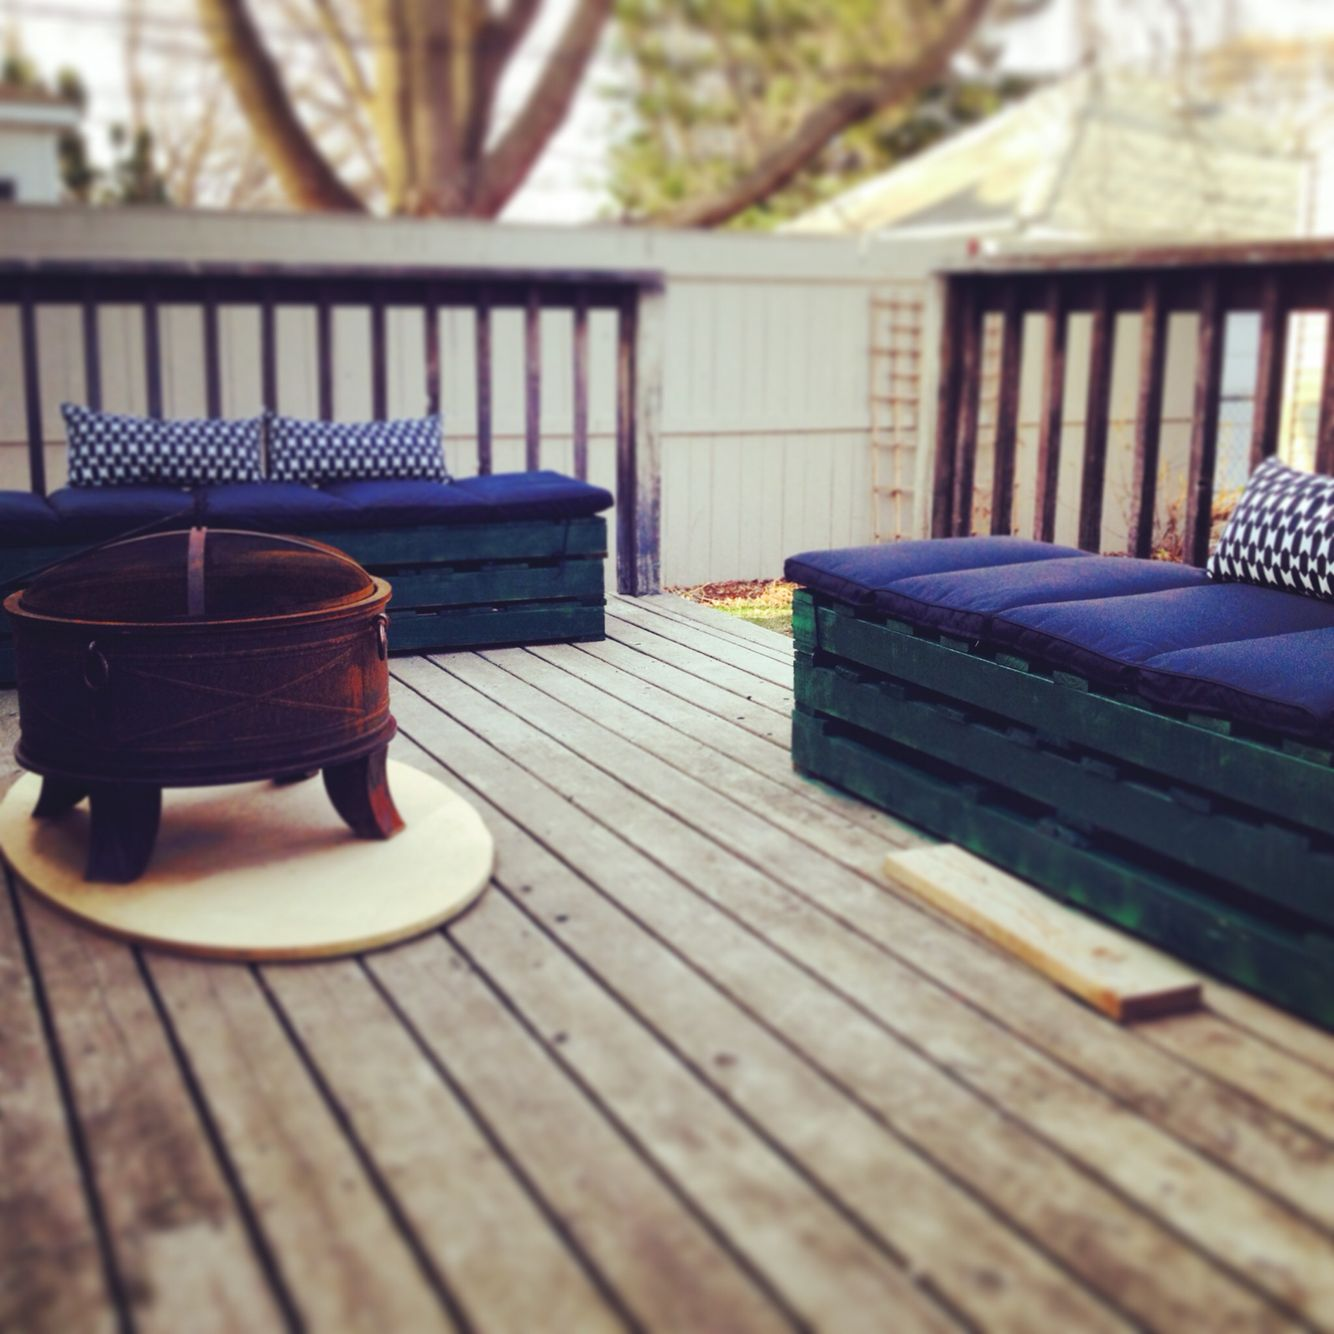 Homemade Palette Furniture. Minneapolis, MN. Ucedgar@yahoo.com.